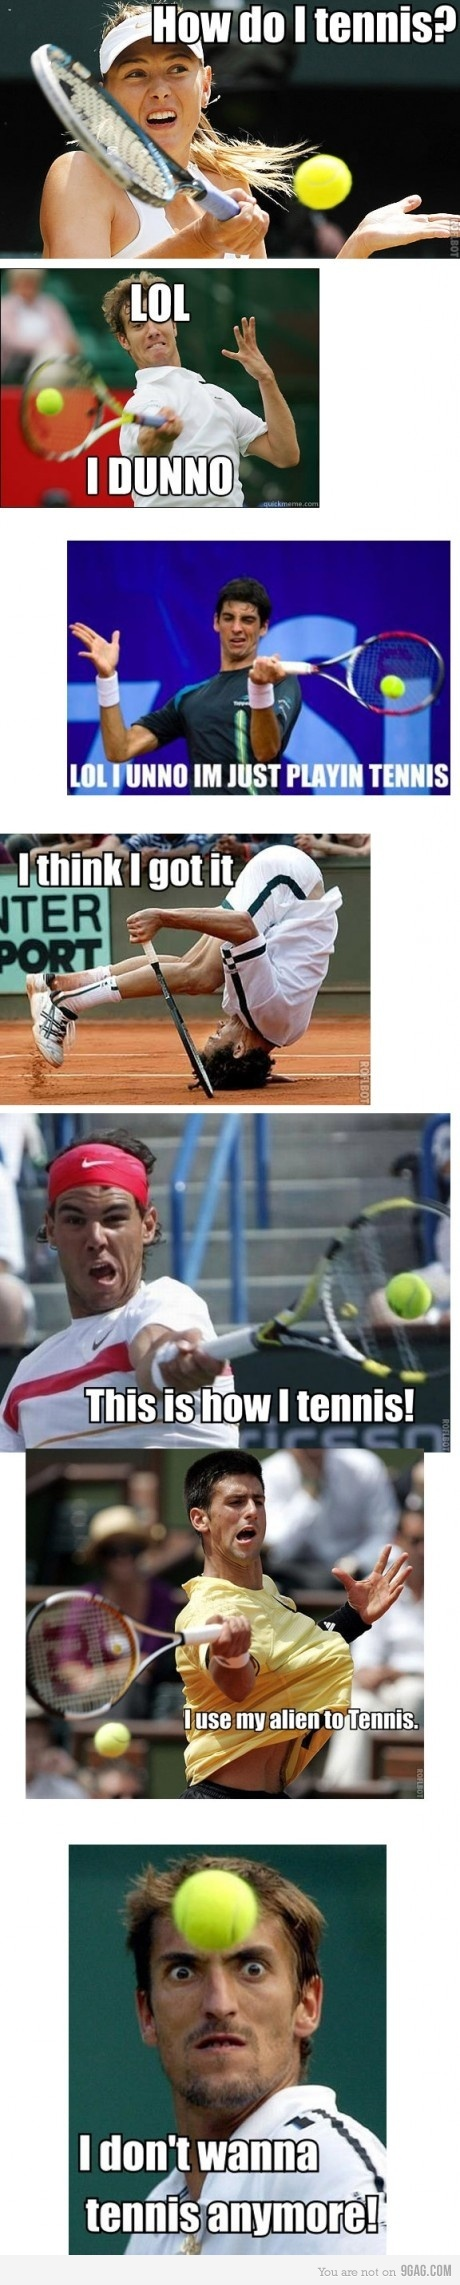 Find This Pin And More On Tennis Funnies!